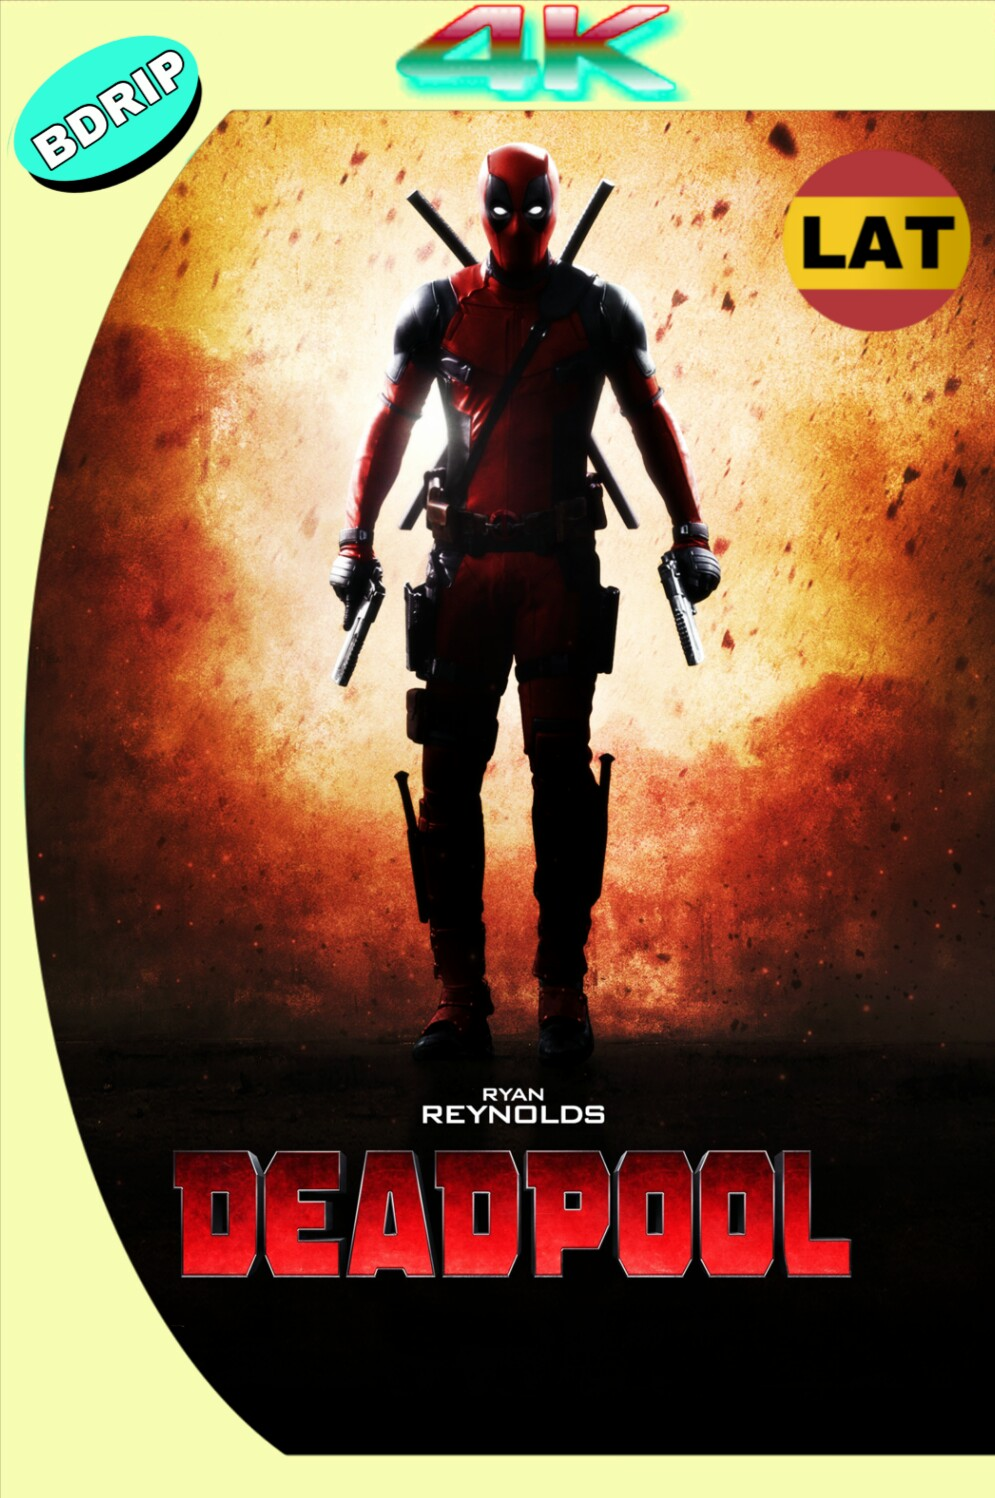 DEADPOOL (2016) BDRIP 2160P 4K UHD LATINO